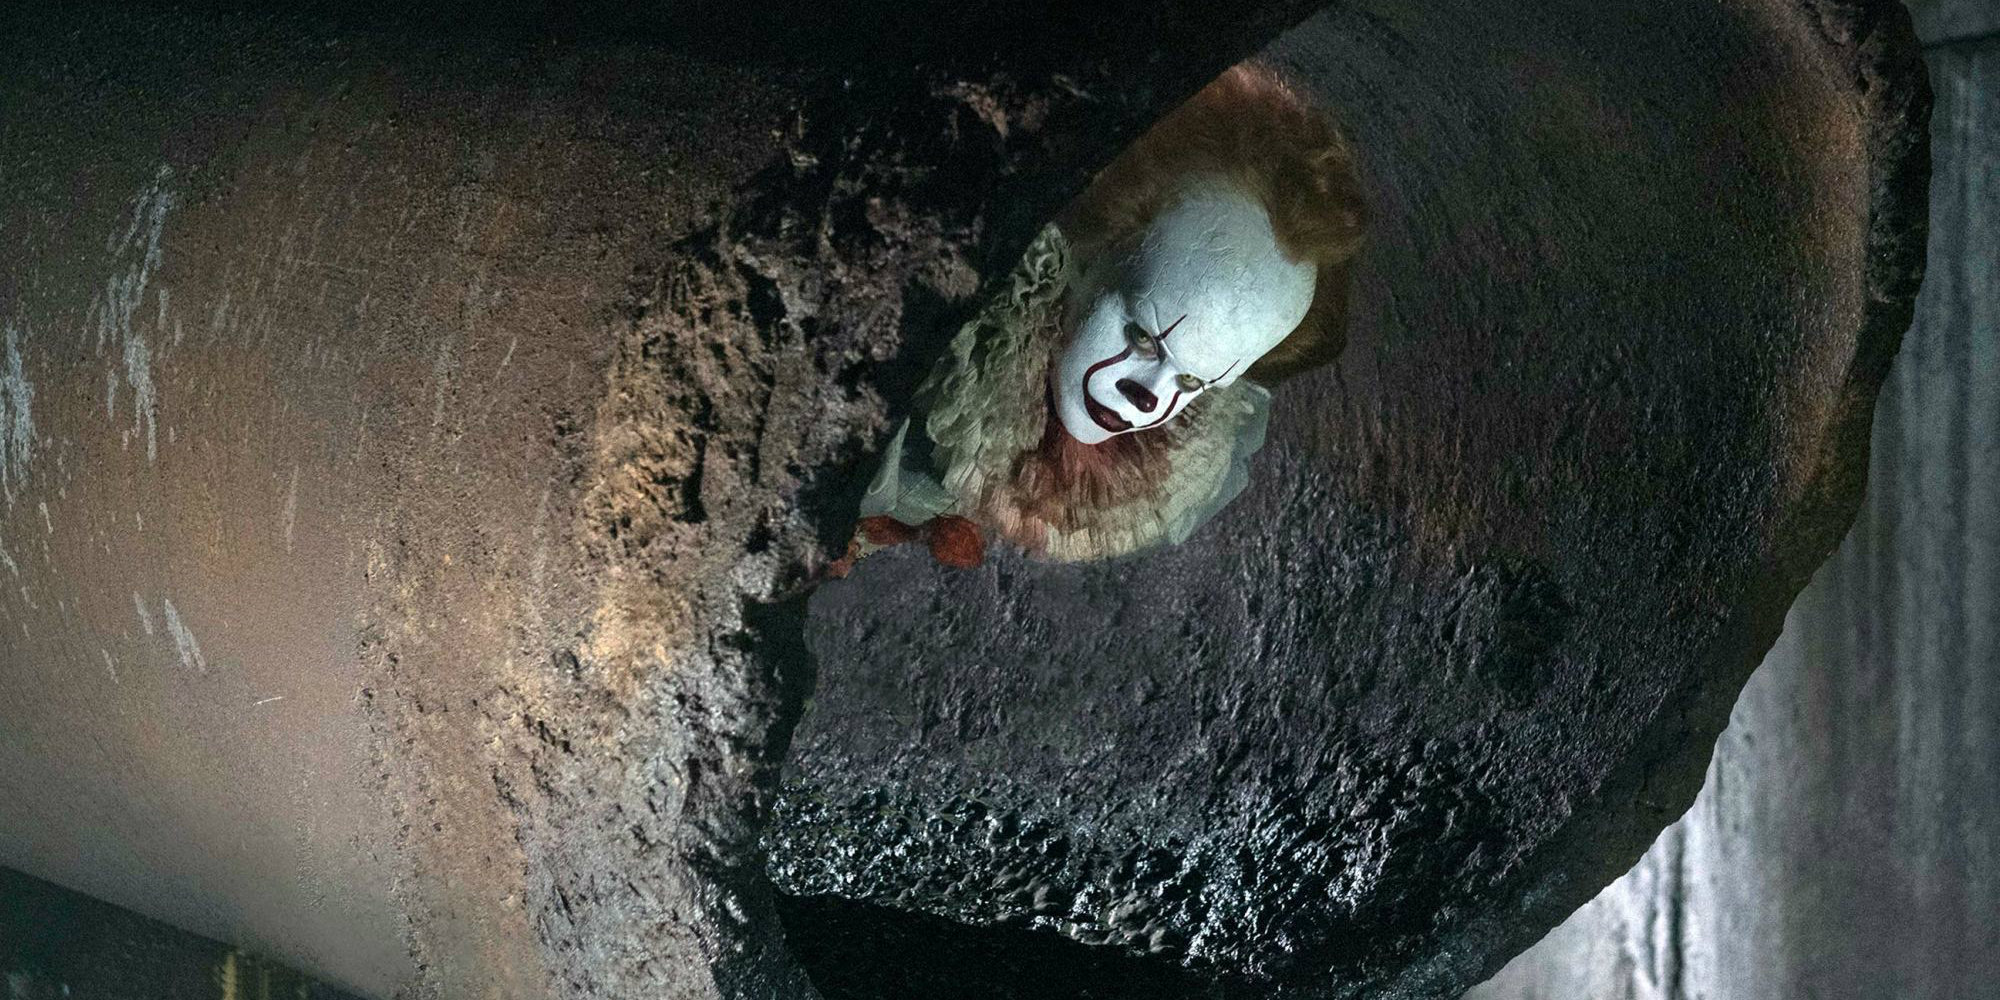 float on new trailer for it released